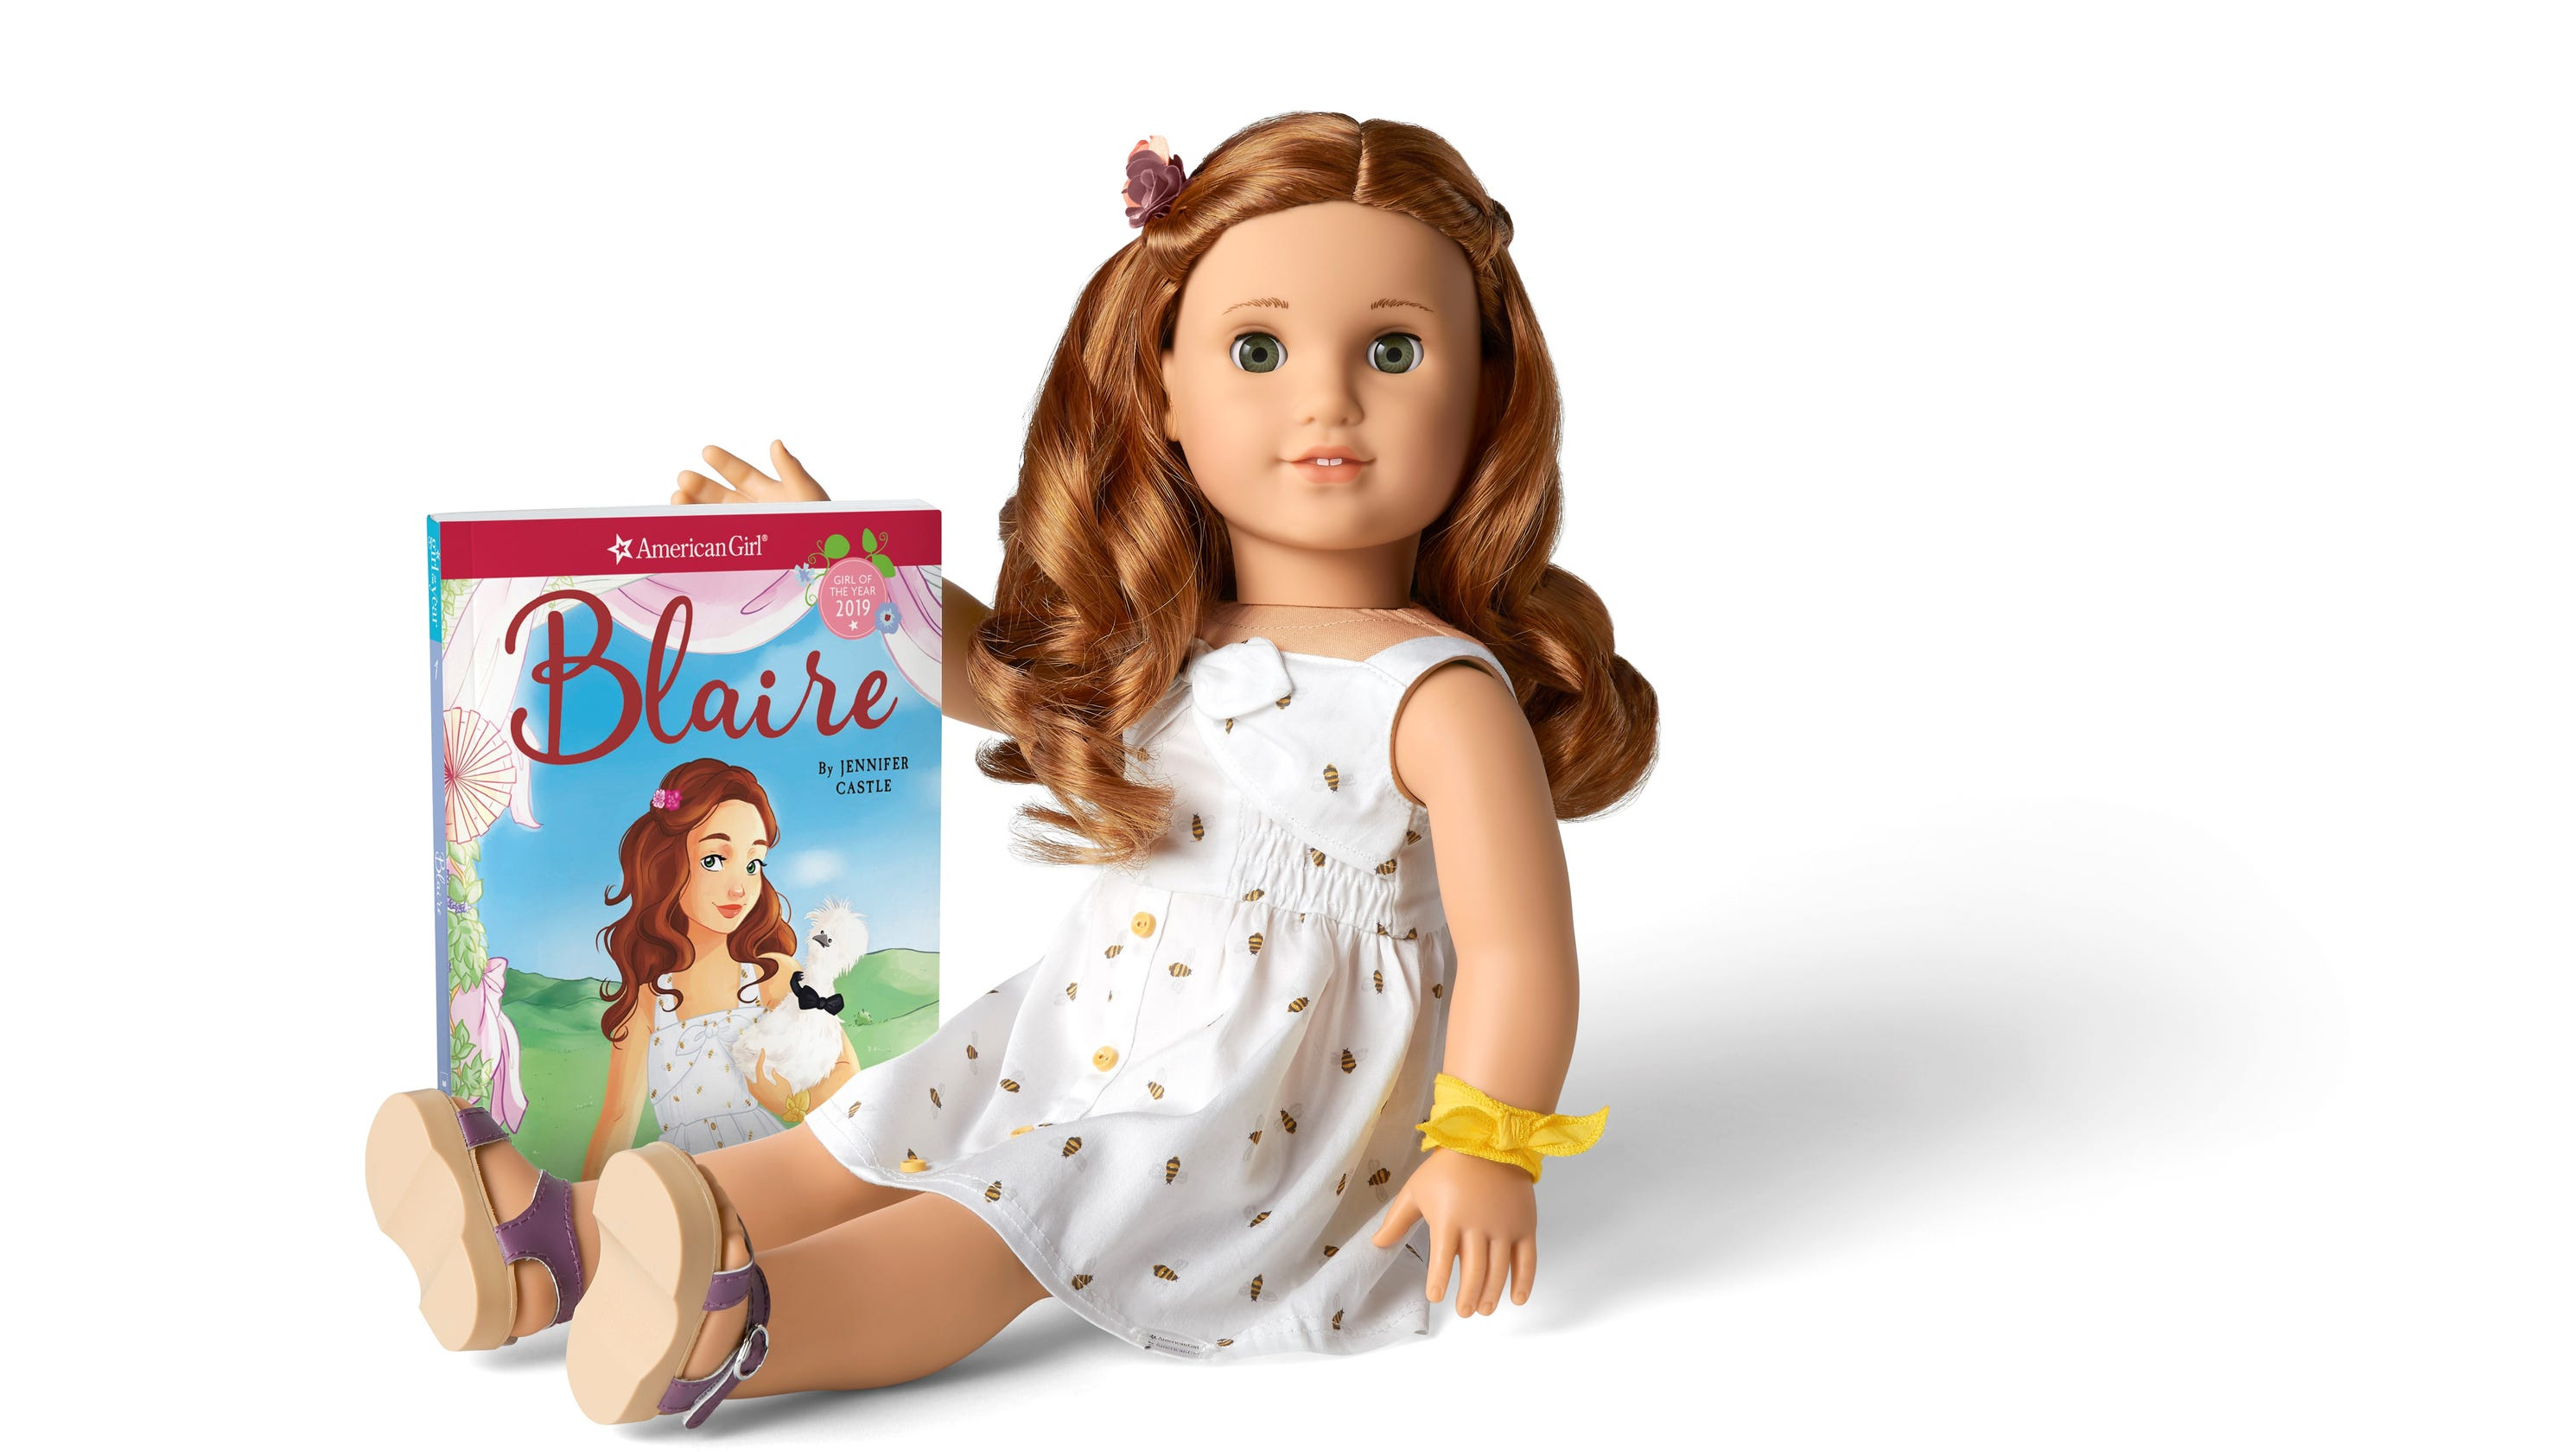 blaire wilson meet the american girl doll from the hudson valley. Black Bedroom Furniture Sets. Home Design Ideas